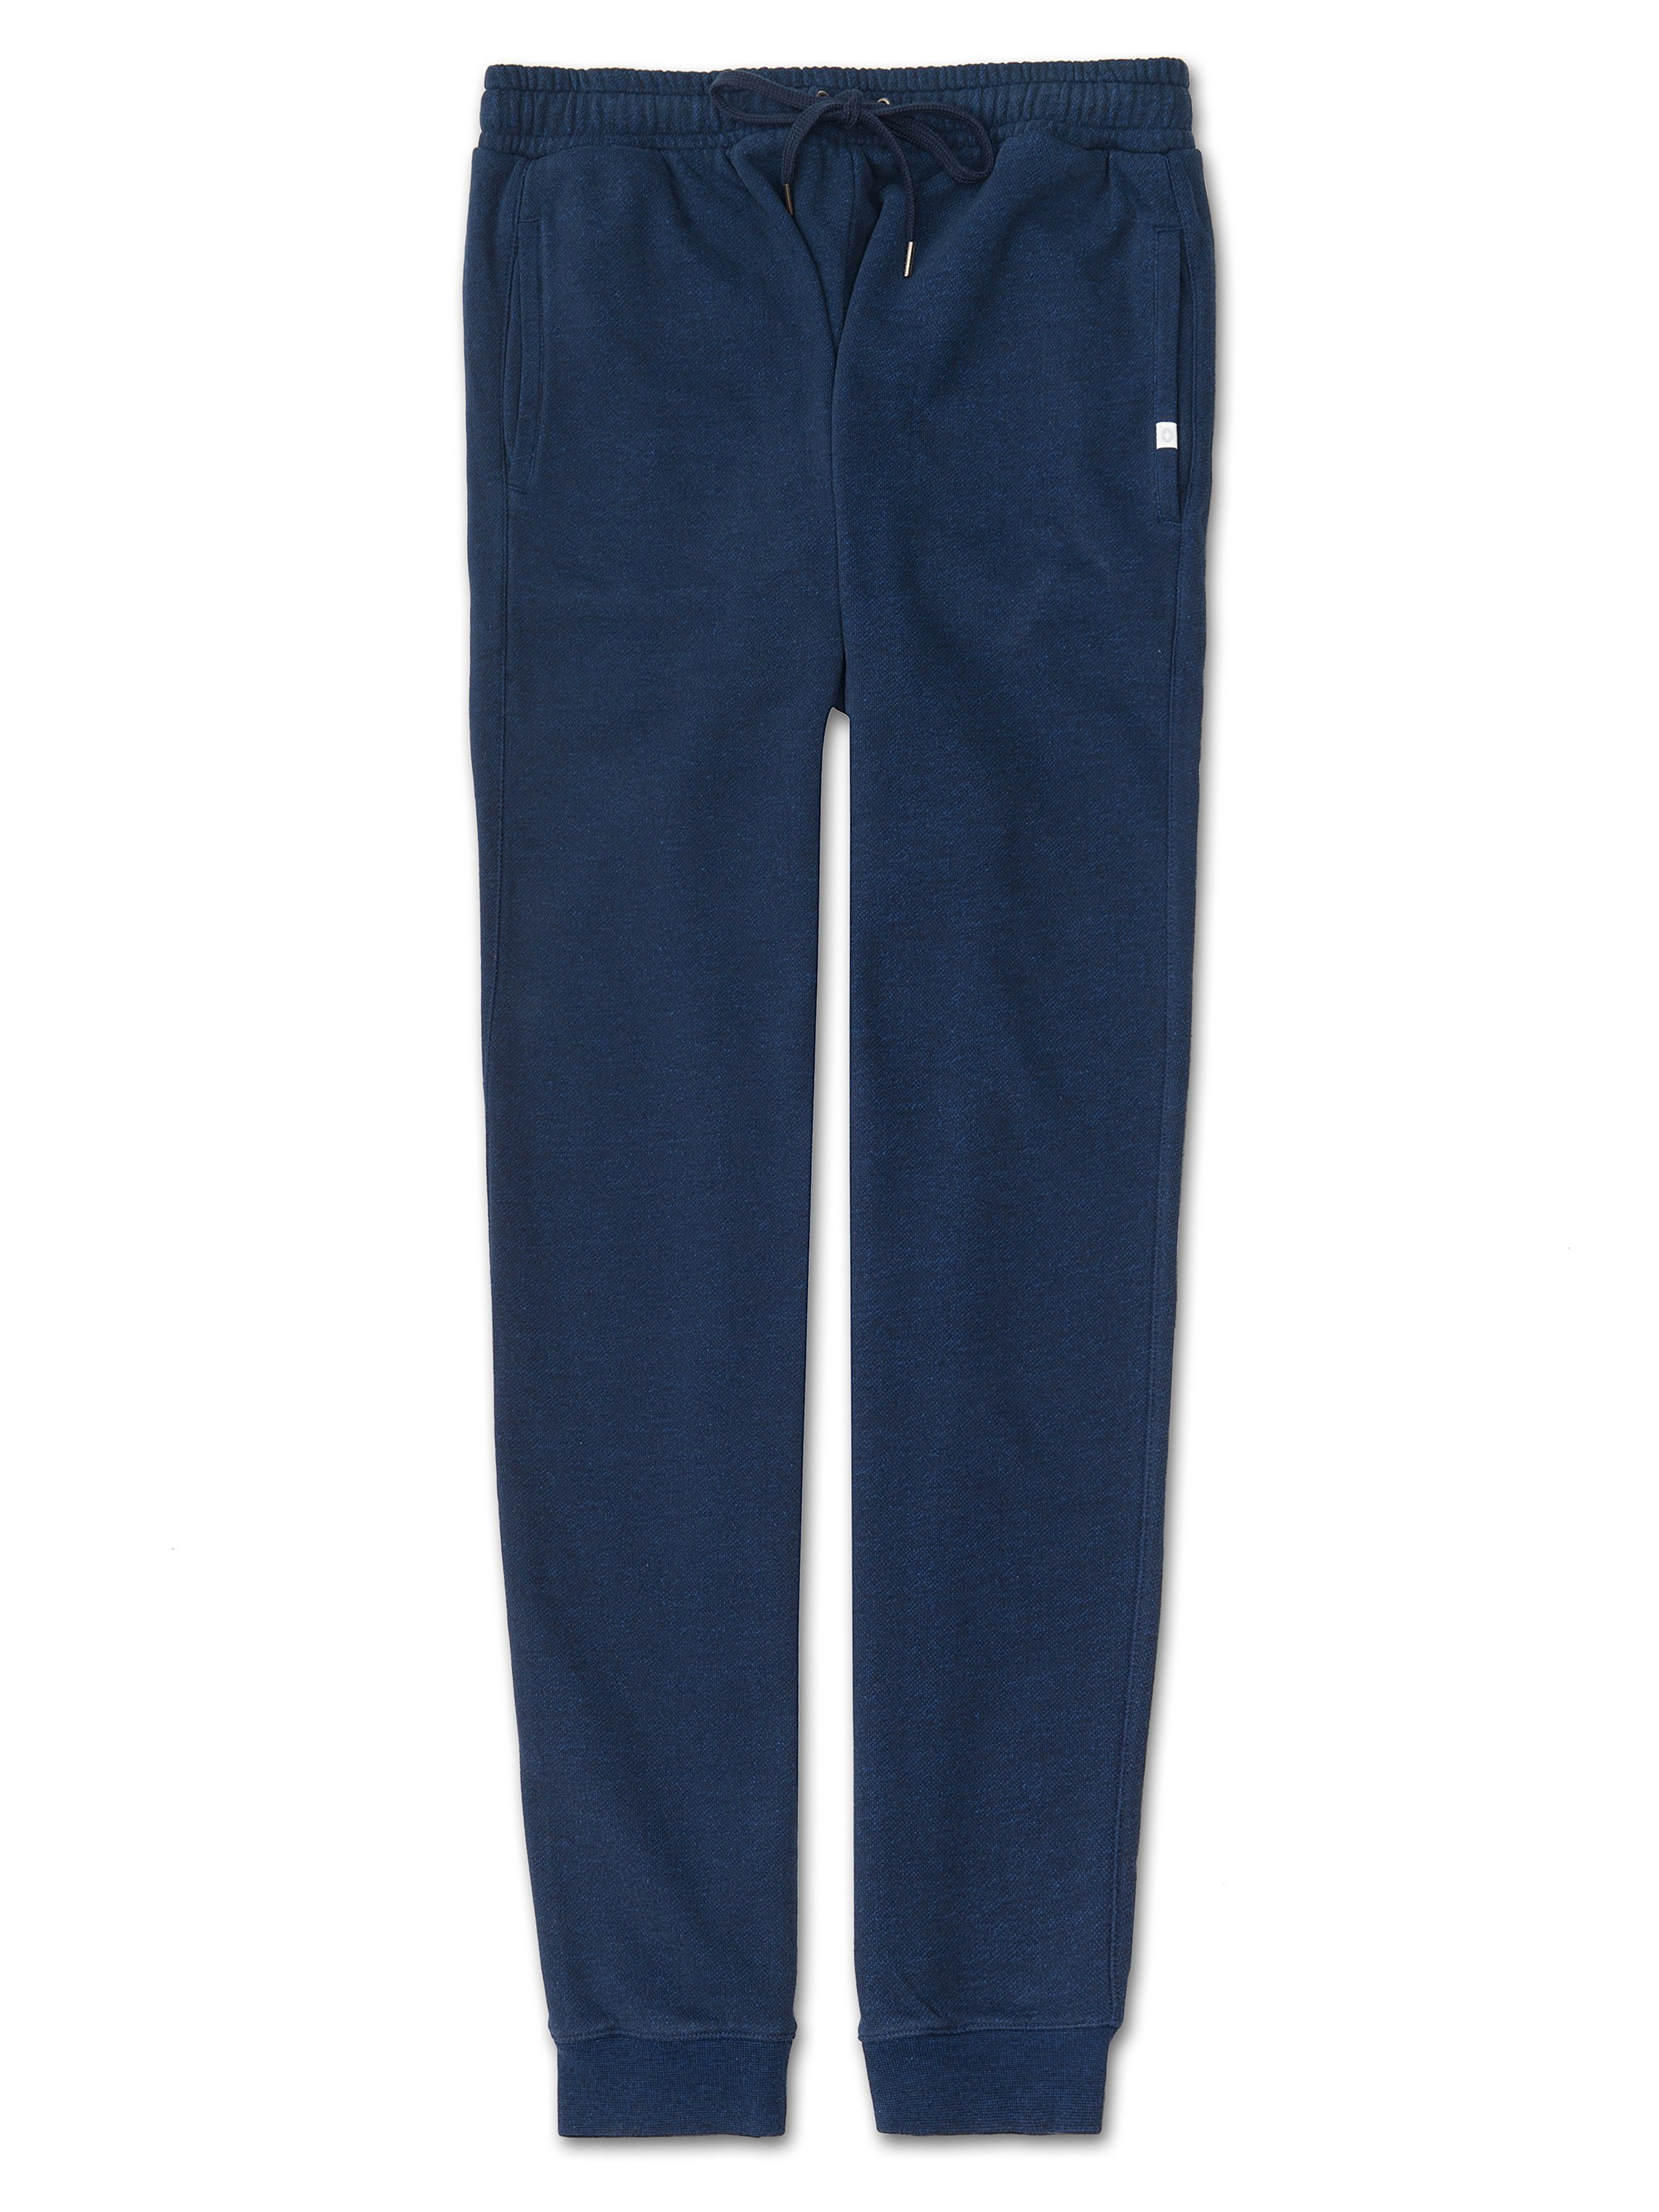 Men's Sweatpants Devon Loopback Cotton Navy